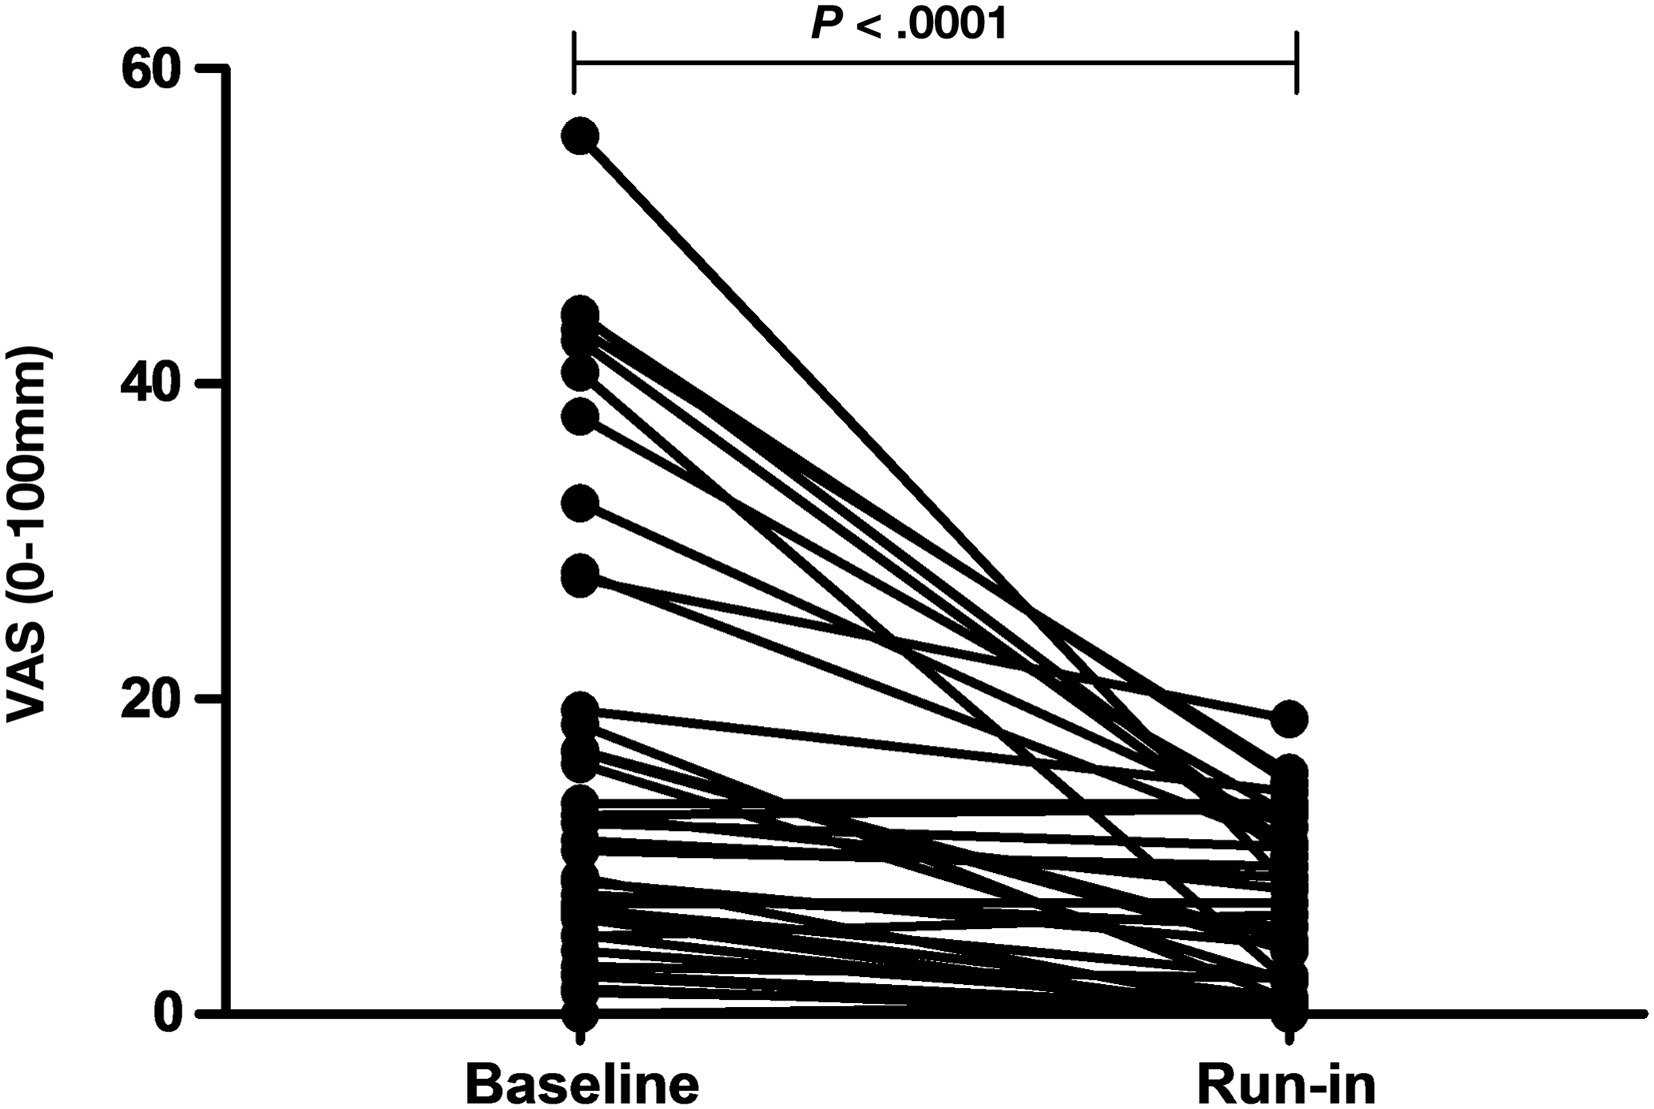 No Effects of Gluten in Patients With Self-Reported Non